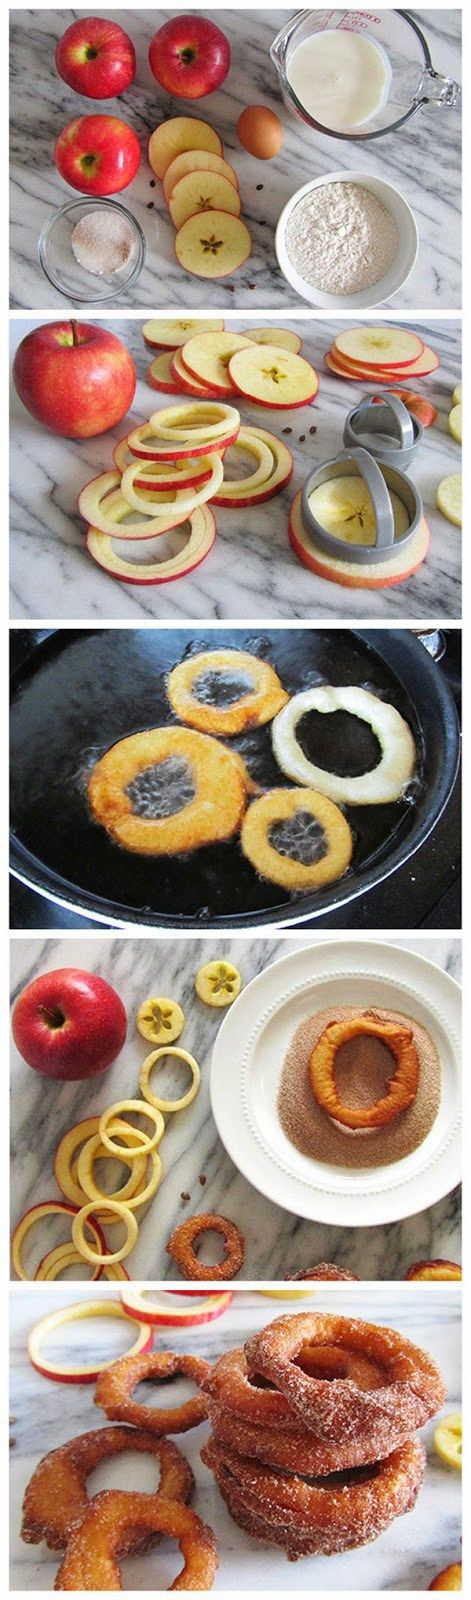 Cinnamon Apple Rings.  I can't say enough good things about them, but all you need to know is they're easy on the eyes and tongue. Think of them as mini apple pies in the form of onion rings. Now think about yourself enjoying one. Why stop there? Go for it and try making a batch of your own.